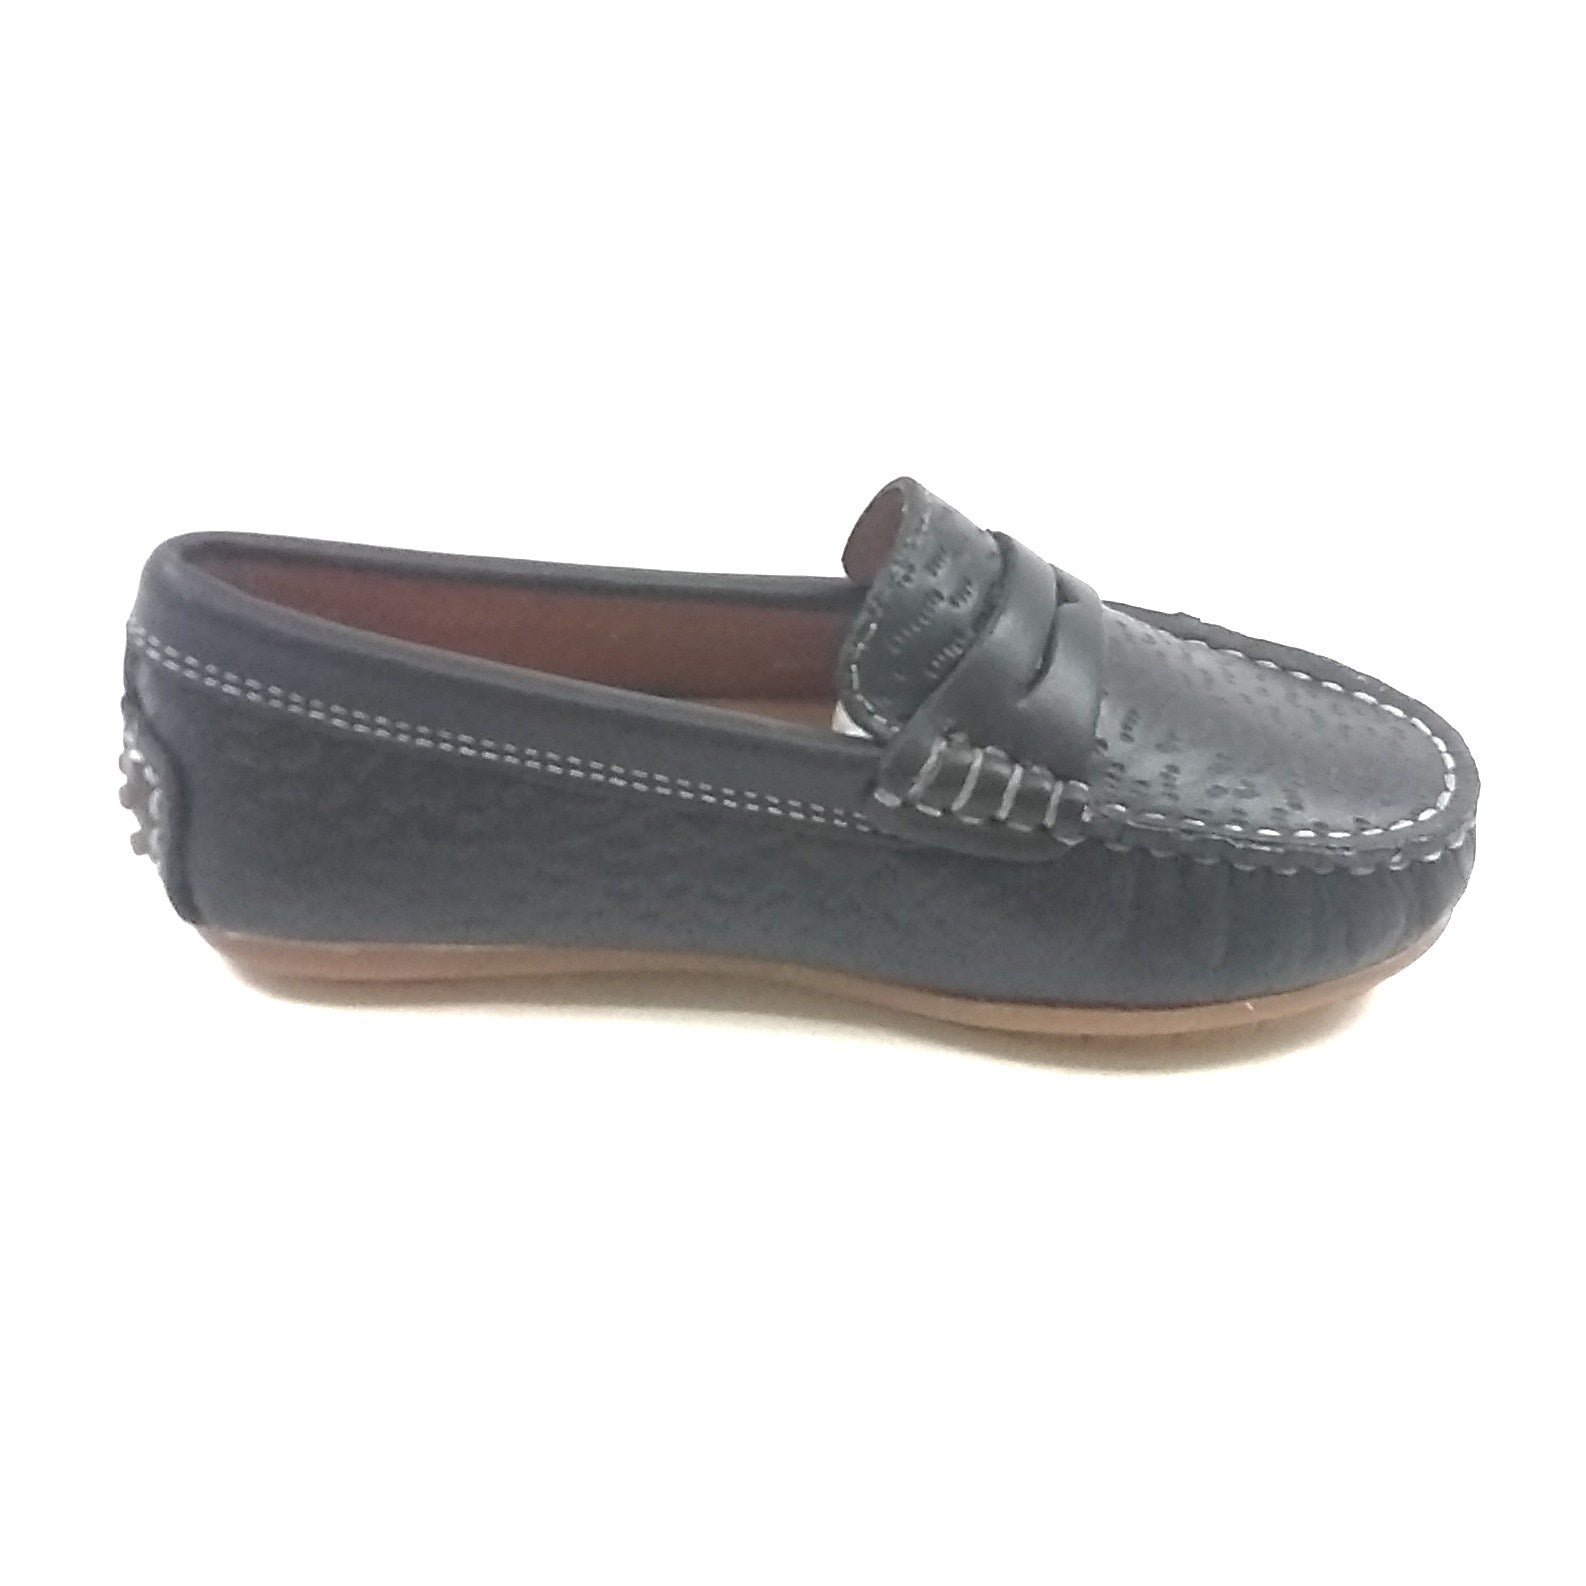 Venettini Navy Textured Penny Loafer